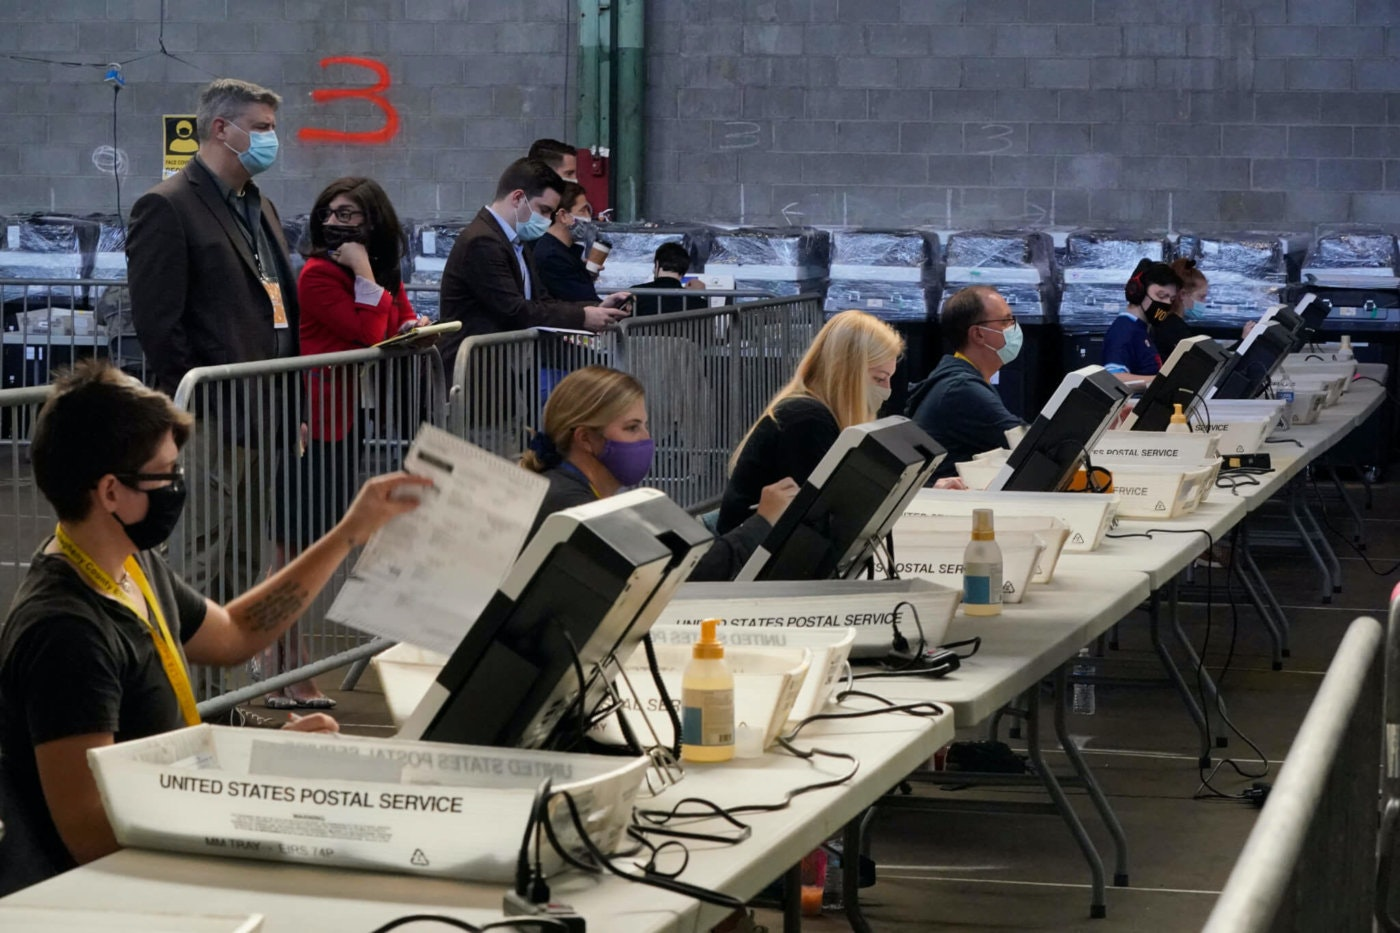 Election office workers process ballots as counting continues from the general election at the Allegheny County elections returns warehouse in Pittsburgh, Friday, Nov. 6, 2020. (AP Photo/Gene J. Puskar)